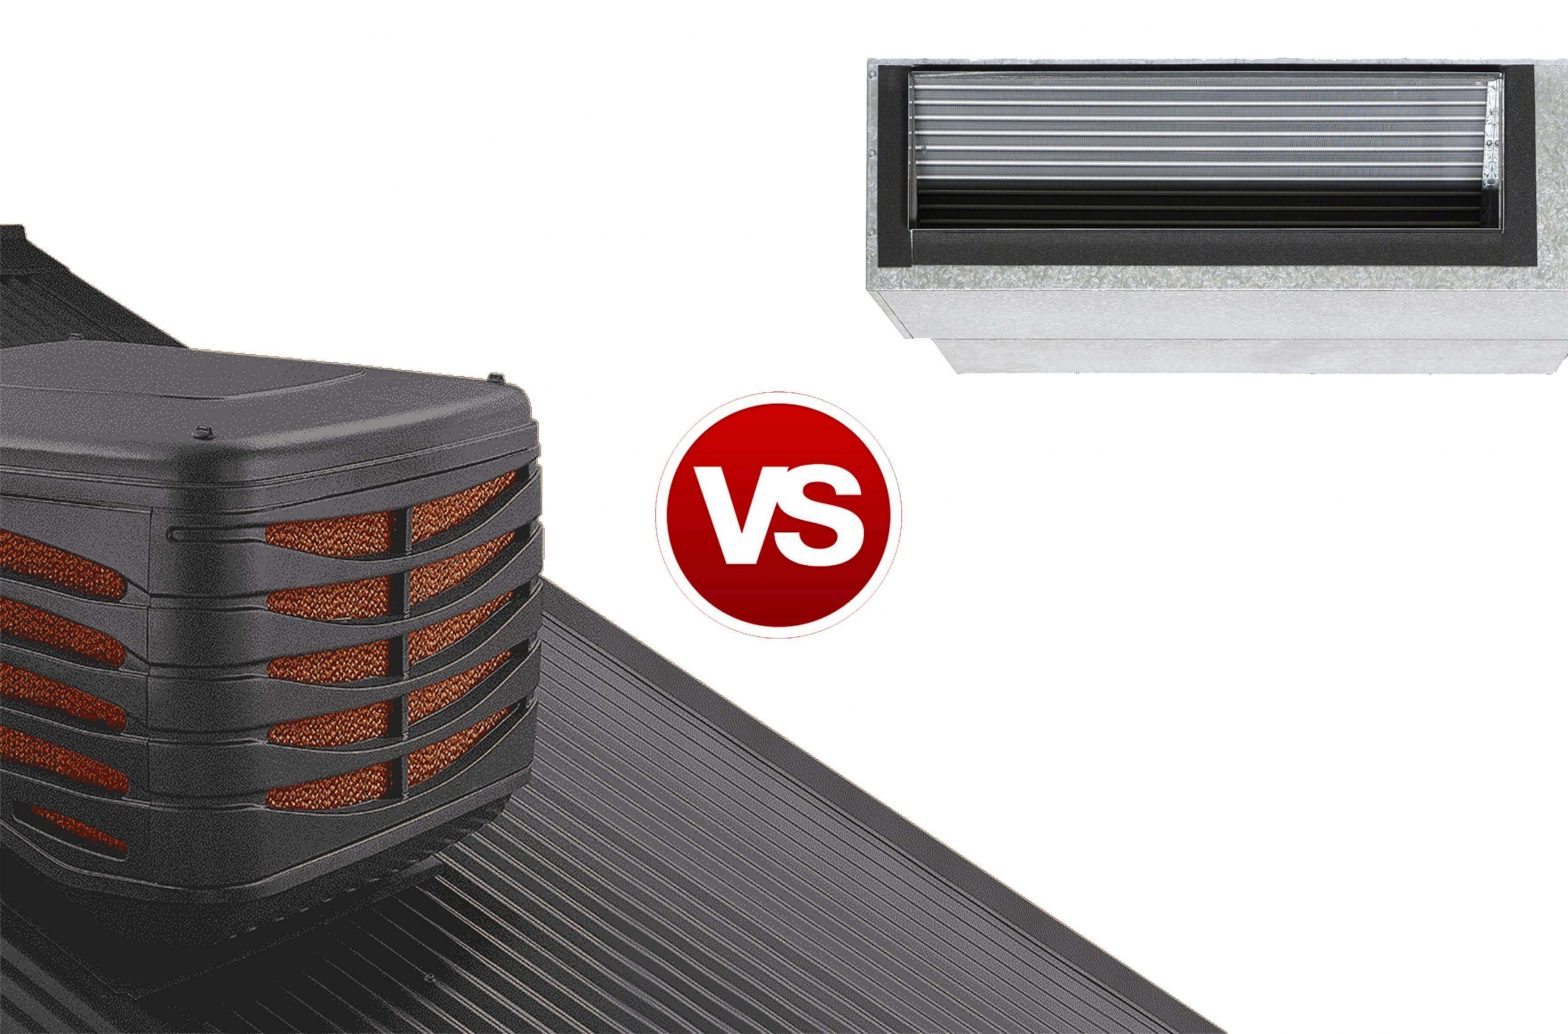 Evaporative Cooling vs. Refrigerated Cooling